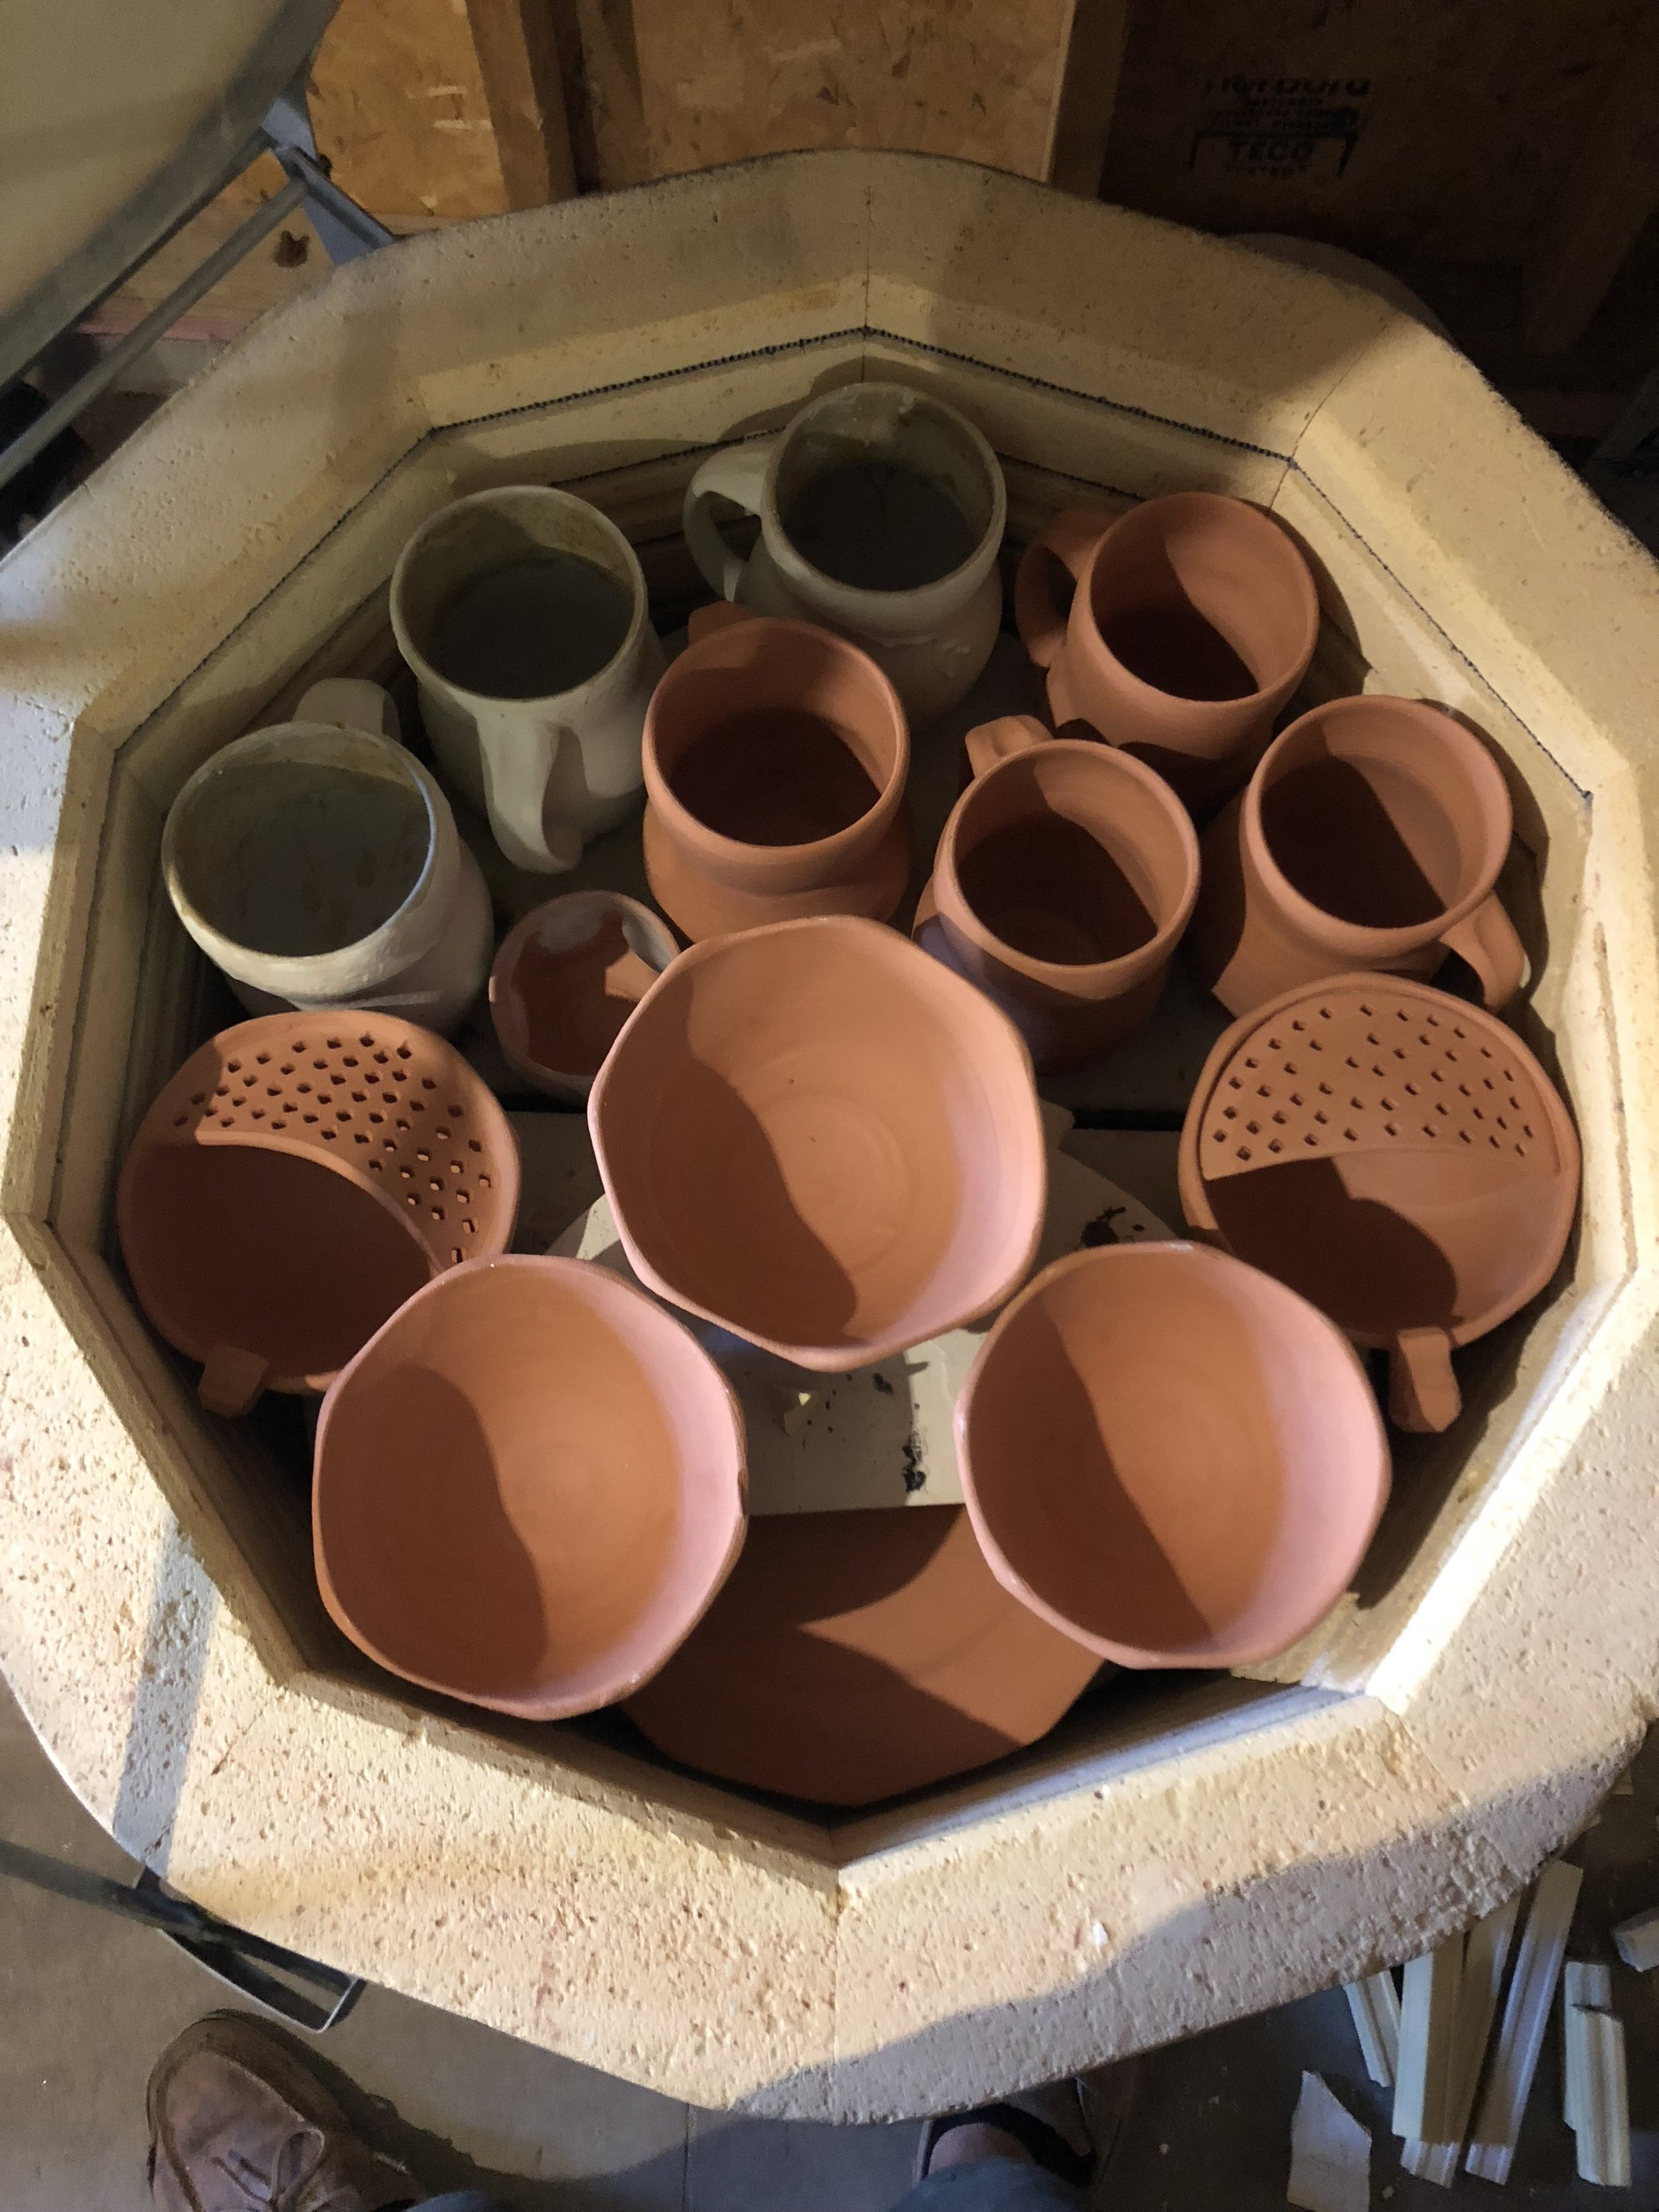 A kiln load of recently bisqued pots before it is unloaded.